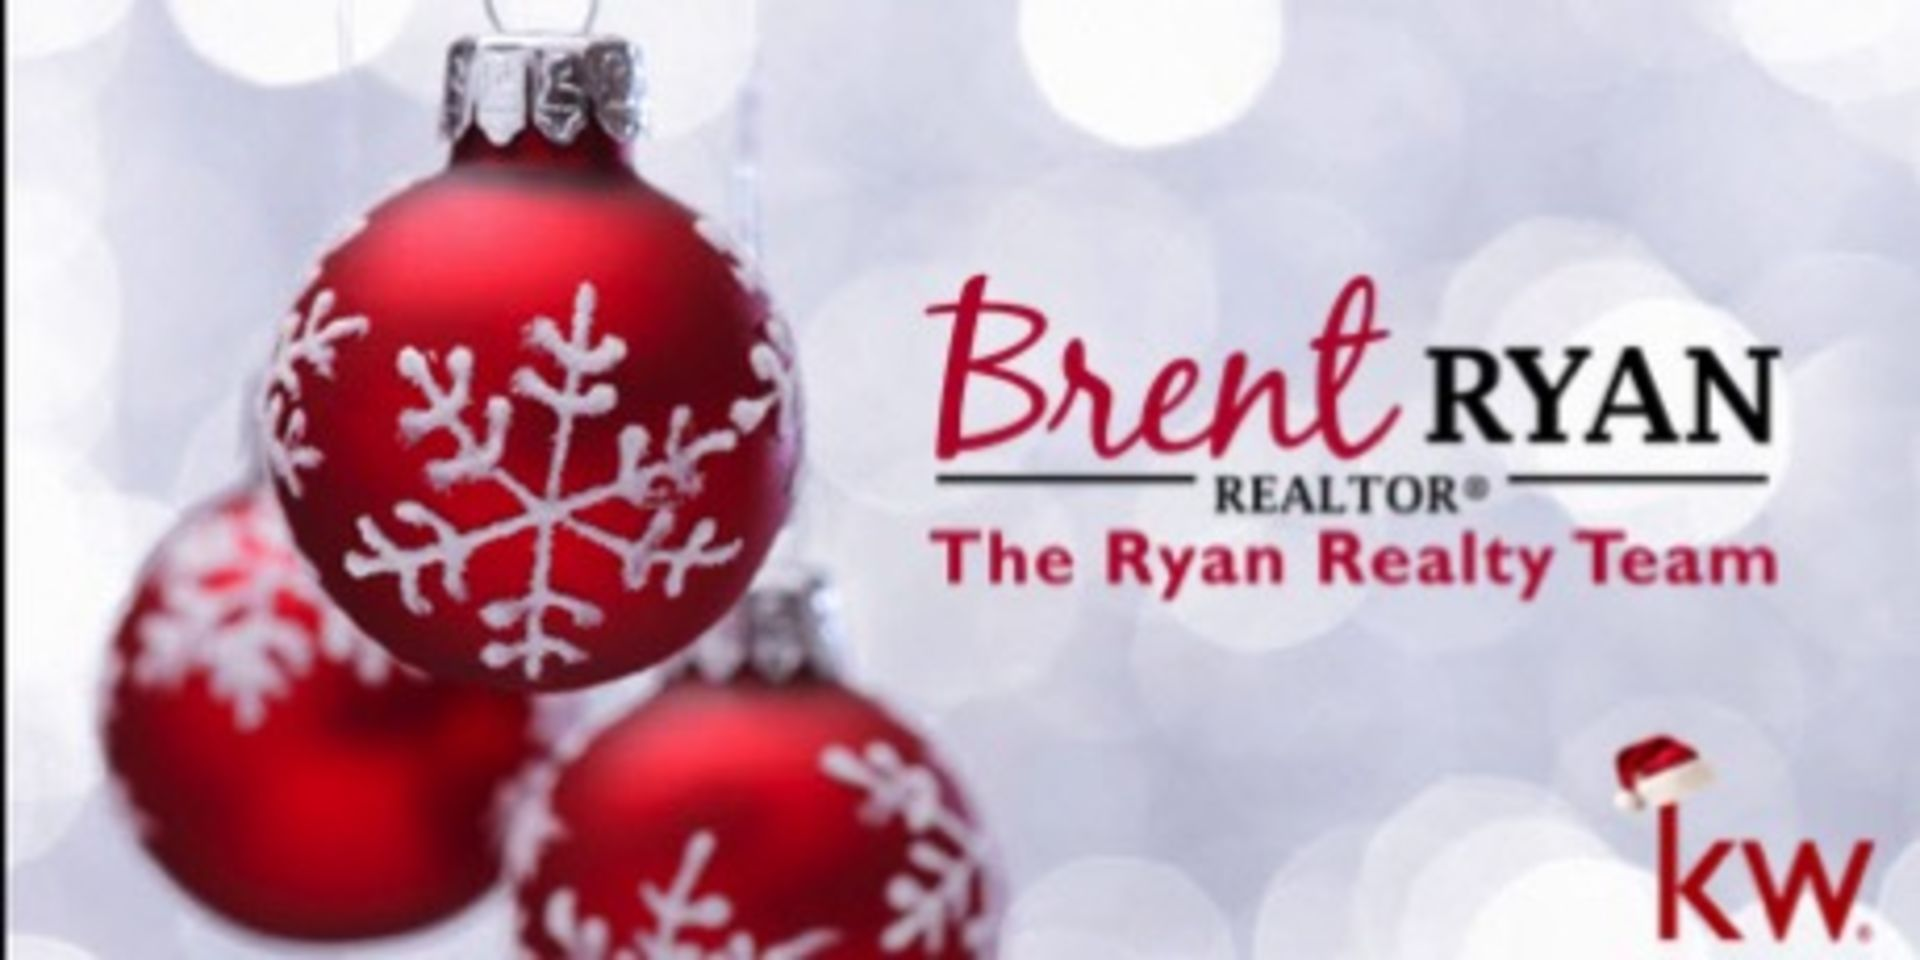 Happy Holidays from Brent Ryan & The Ryan Realty Team